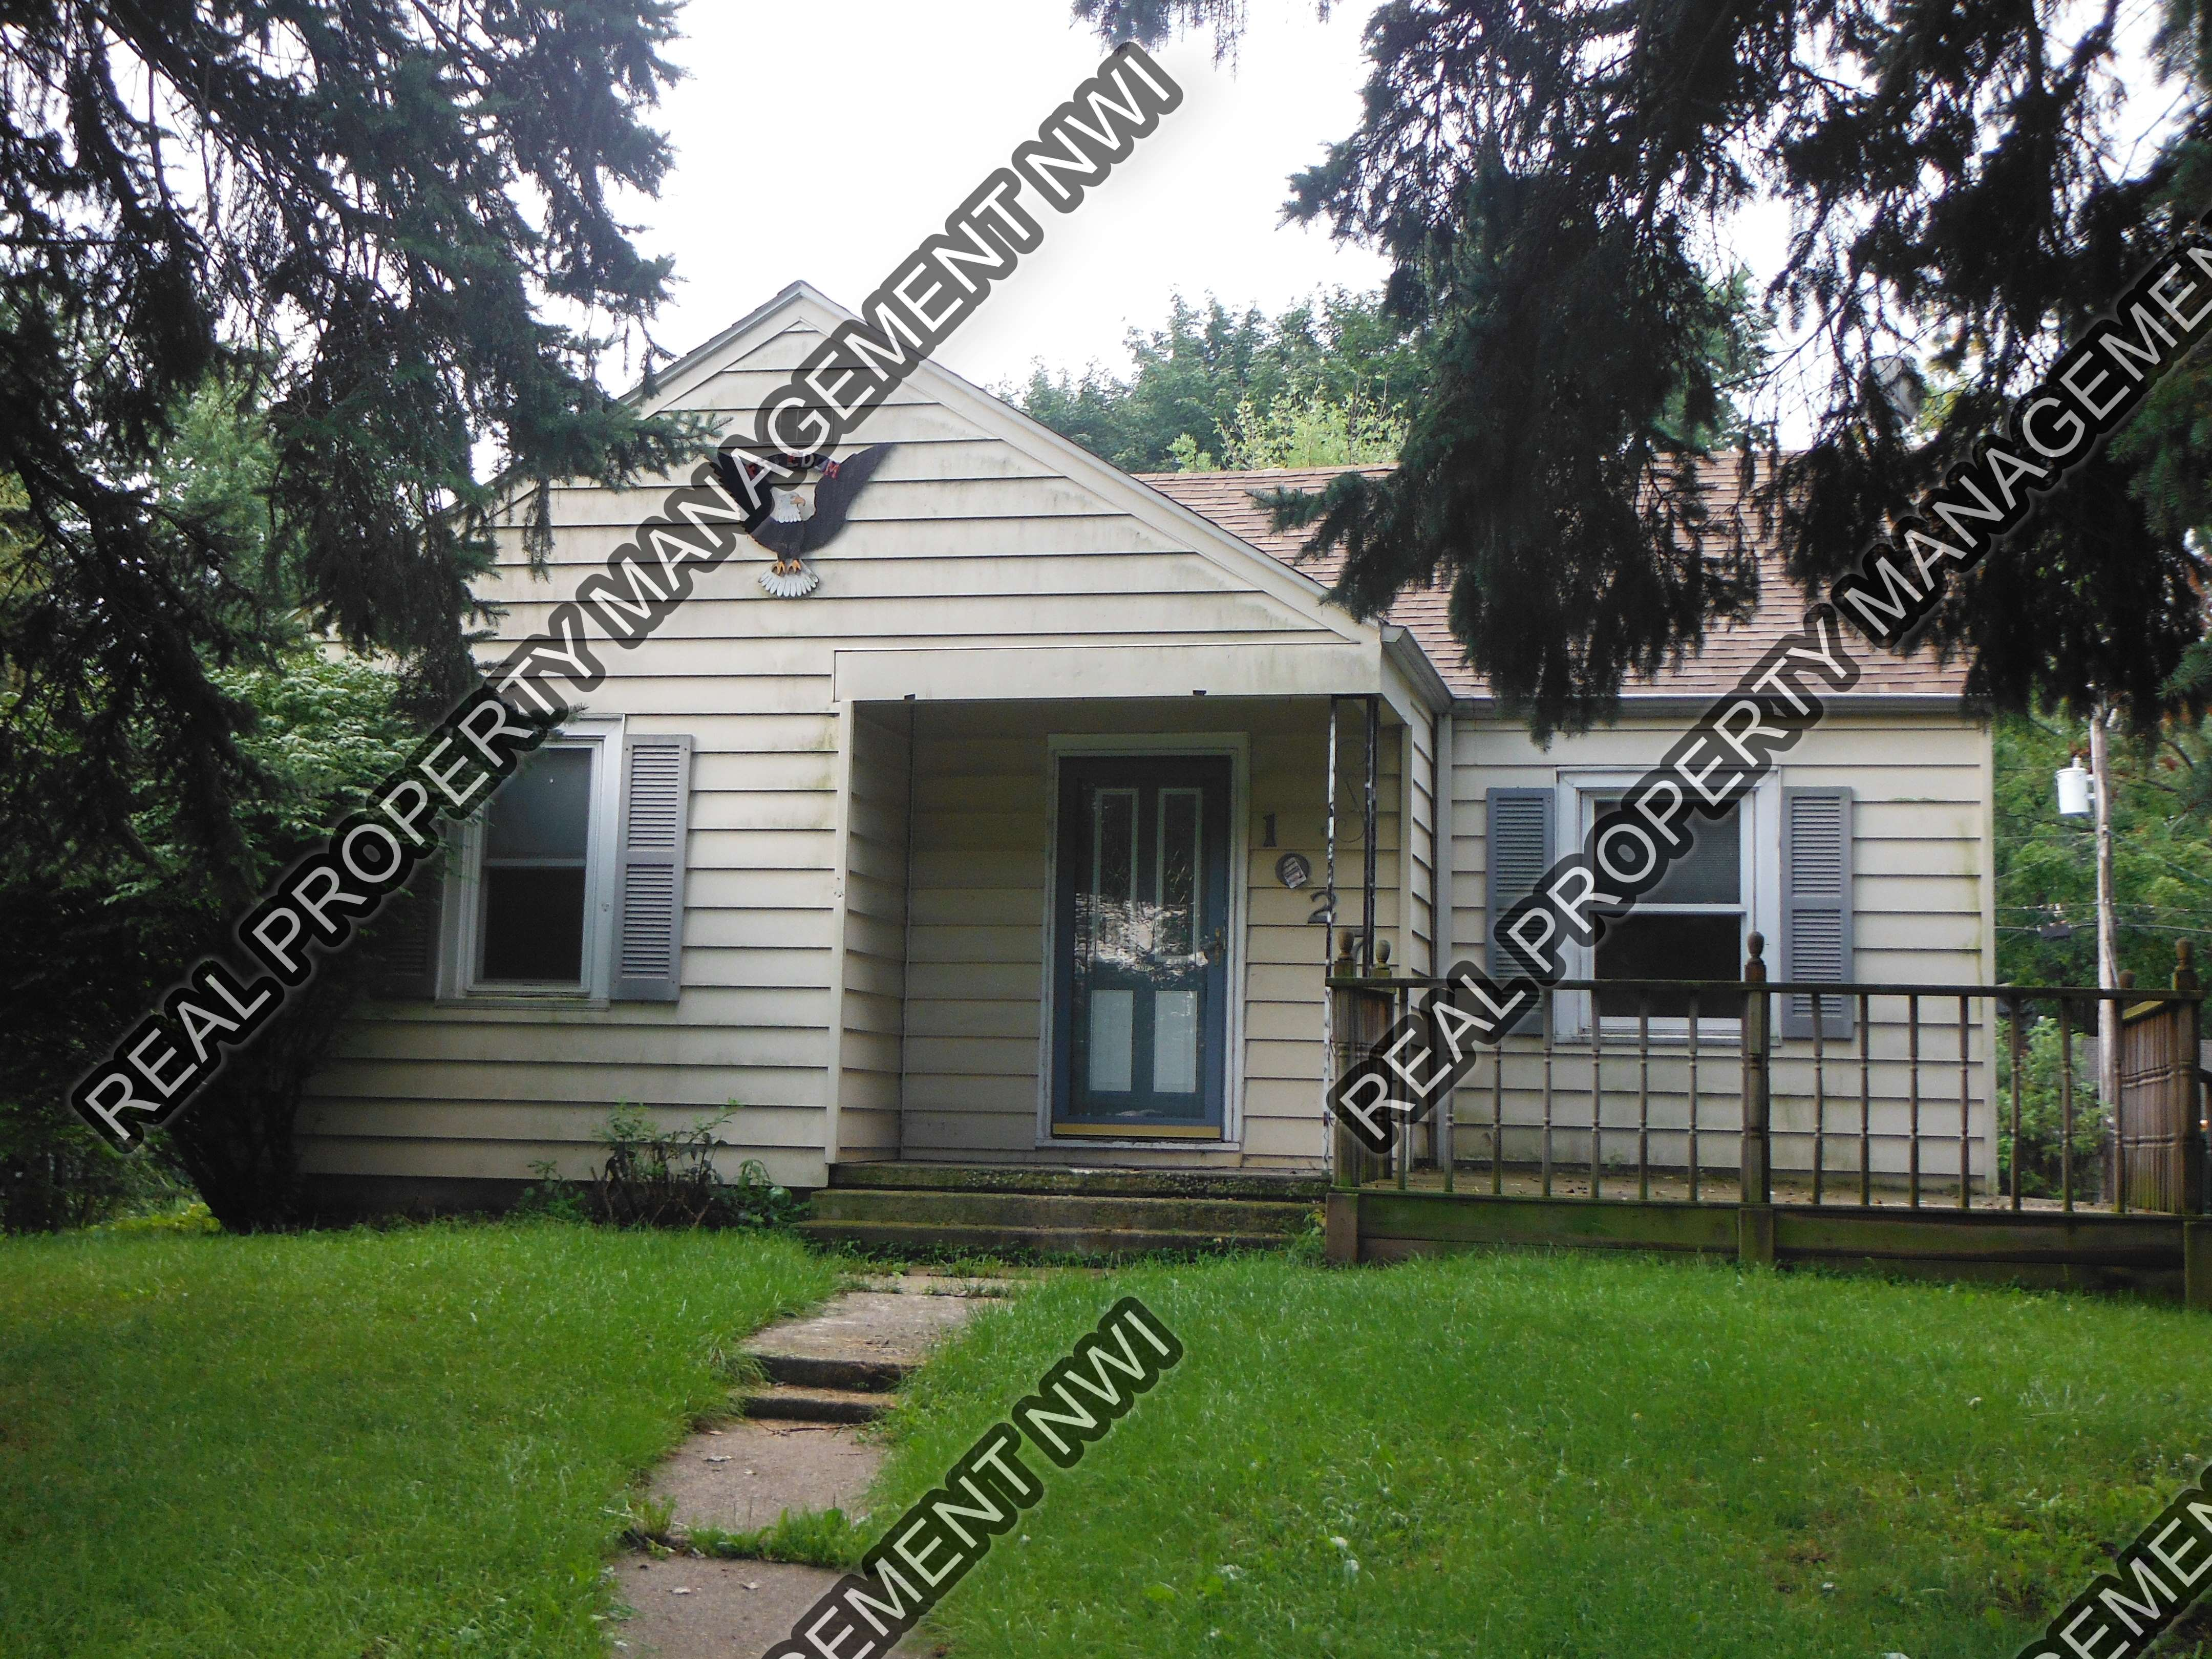 House for Rent in Merrillville